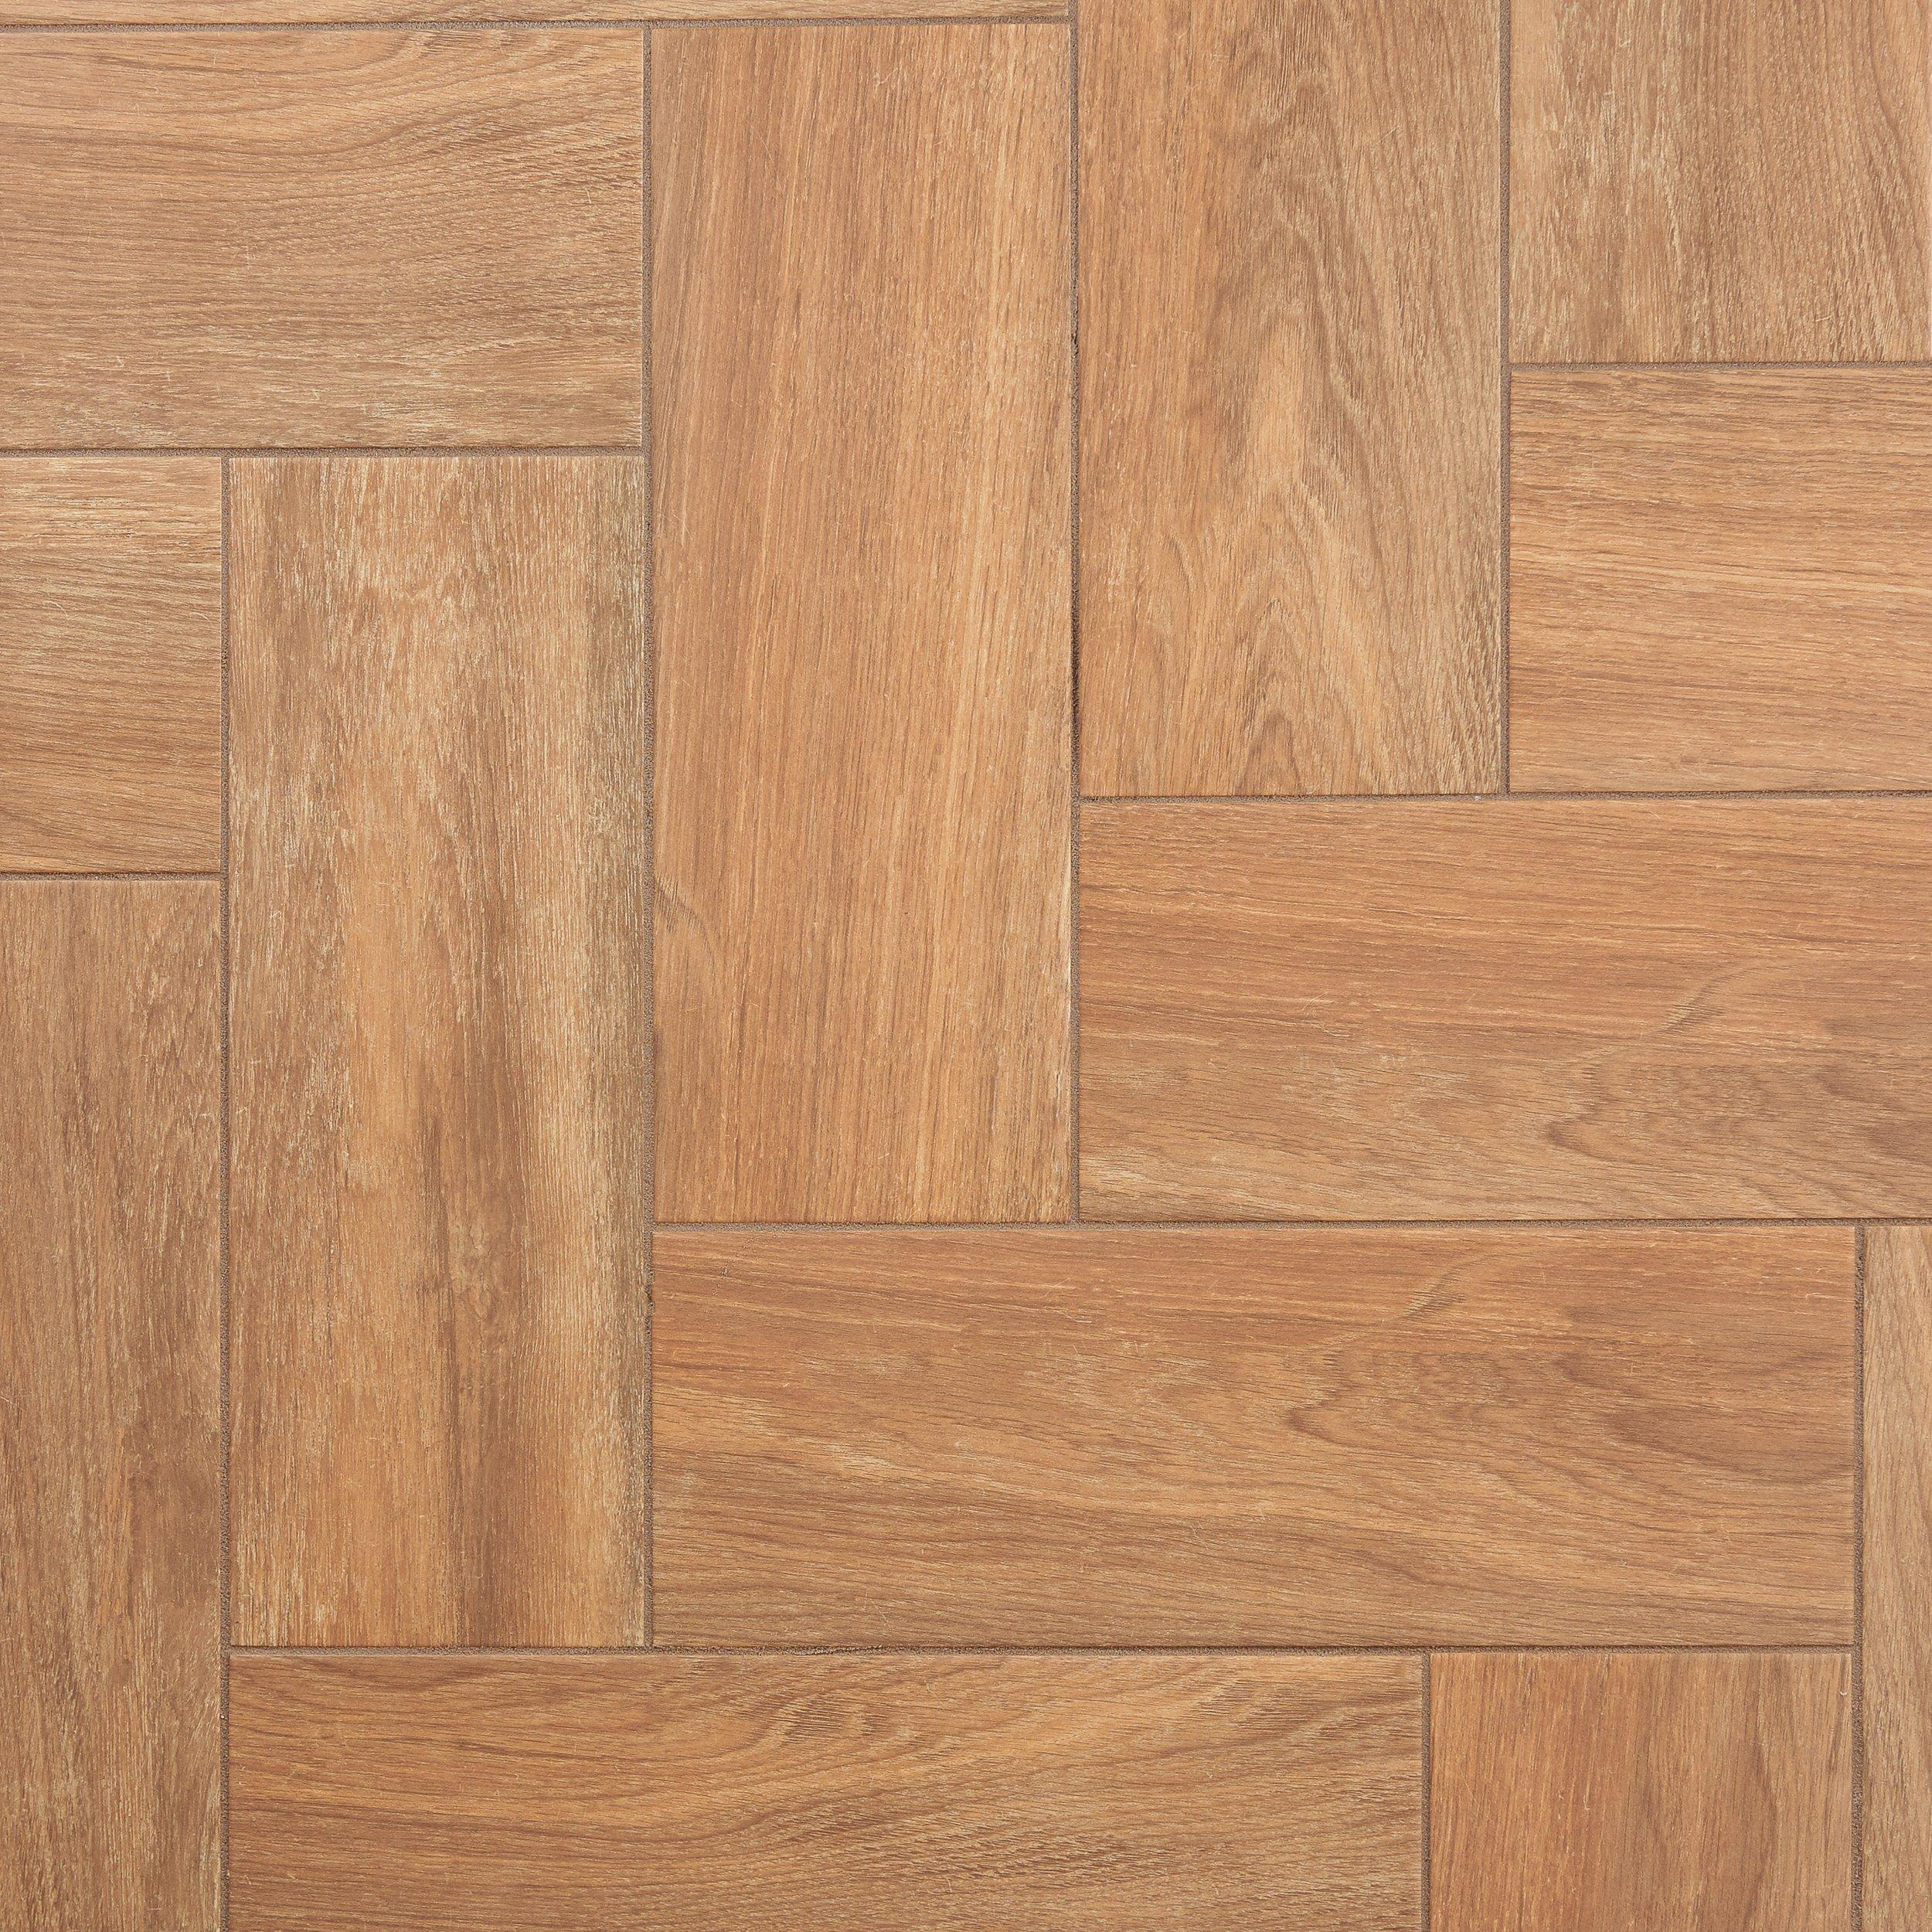 Addison Oak Wood Plank Ceramic Tile   7 X 20   100191279 | Floor And Decor